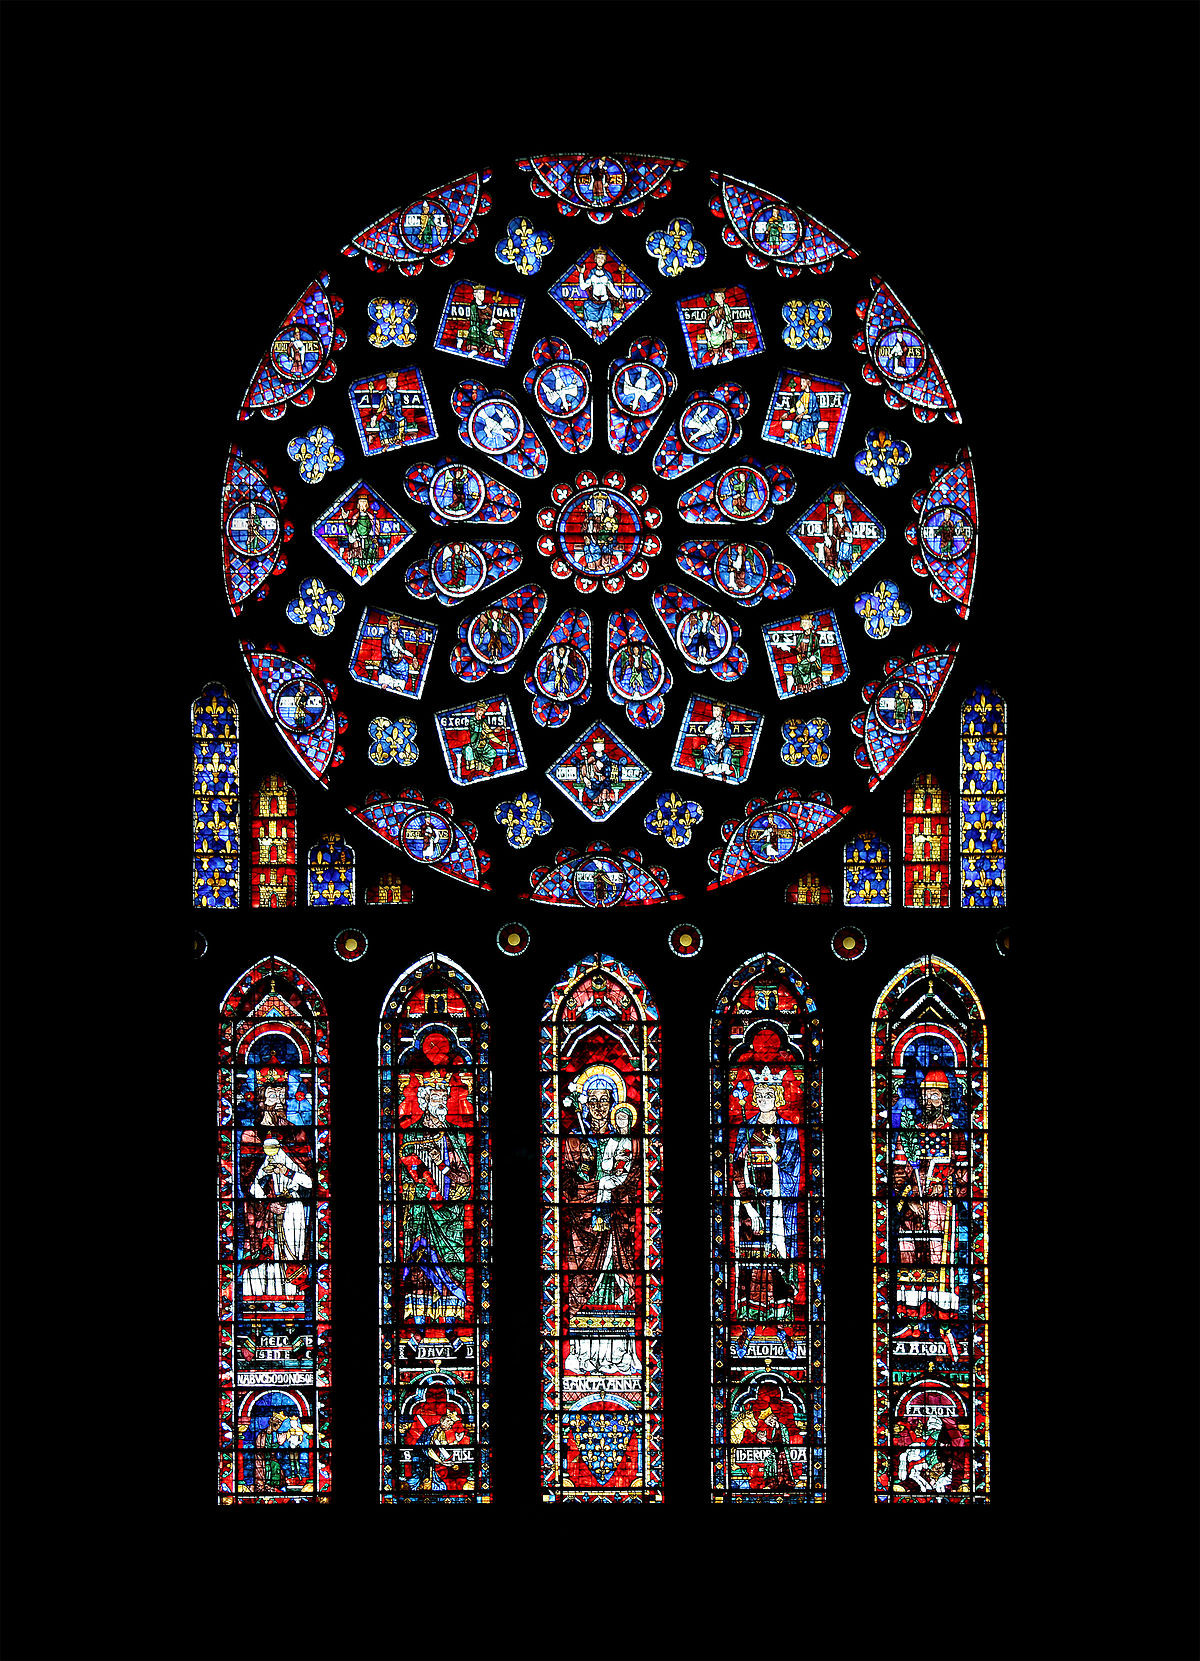 fused glass wall vase of stained glass wikipedia intended for 1200px chartres cathedrale rosace nord